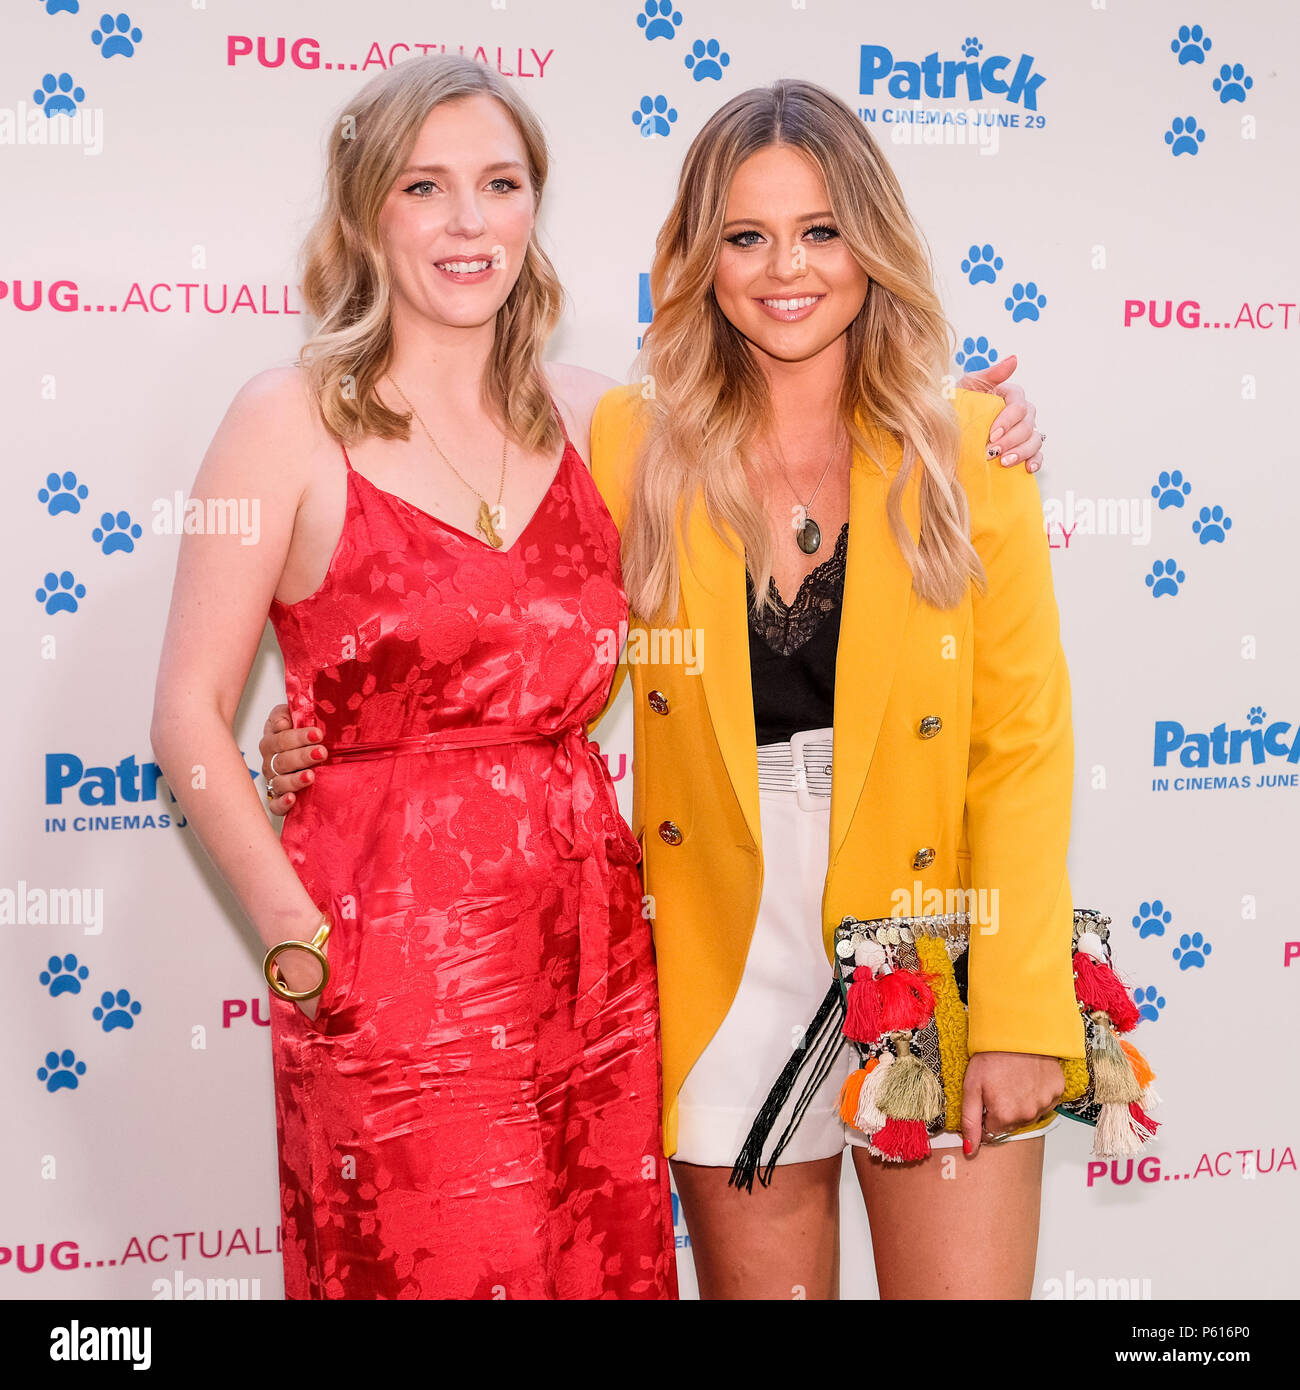 London, UK. 27th Jun, 2018. Beattie Edmondson and Emily Atack at UK Premiere of Patrick on Wednesday 27 June 2018 held at an exclusive private London garden, London. Pictured: Emily Atack, Beattie Edmondson. Credit: Julie Edwards/Alamy Live News - Stock Image